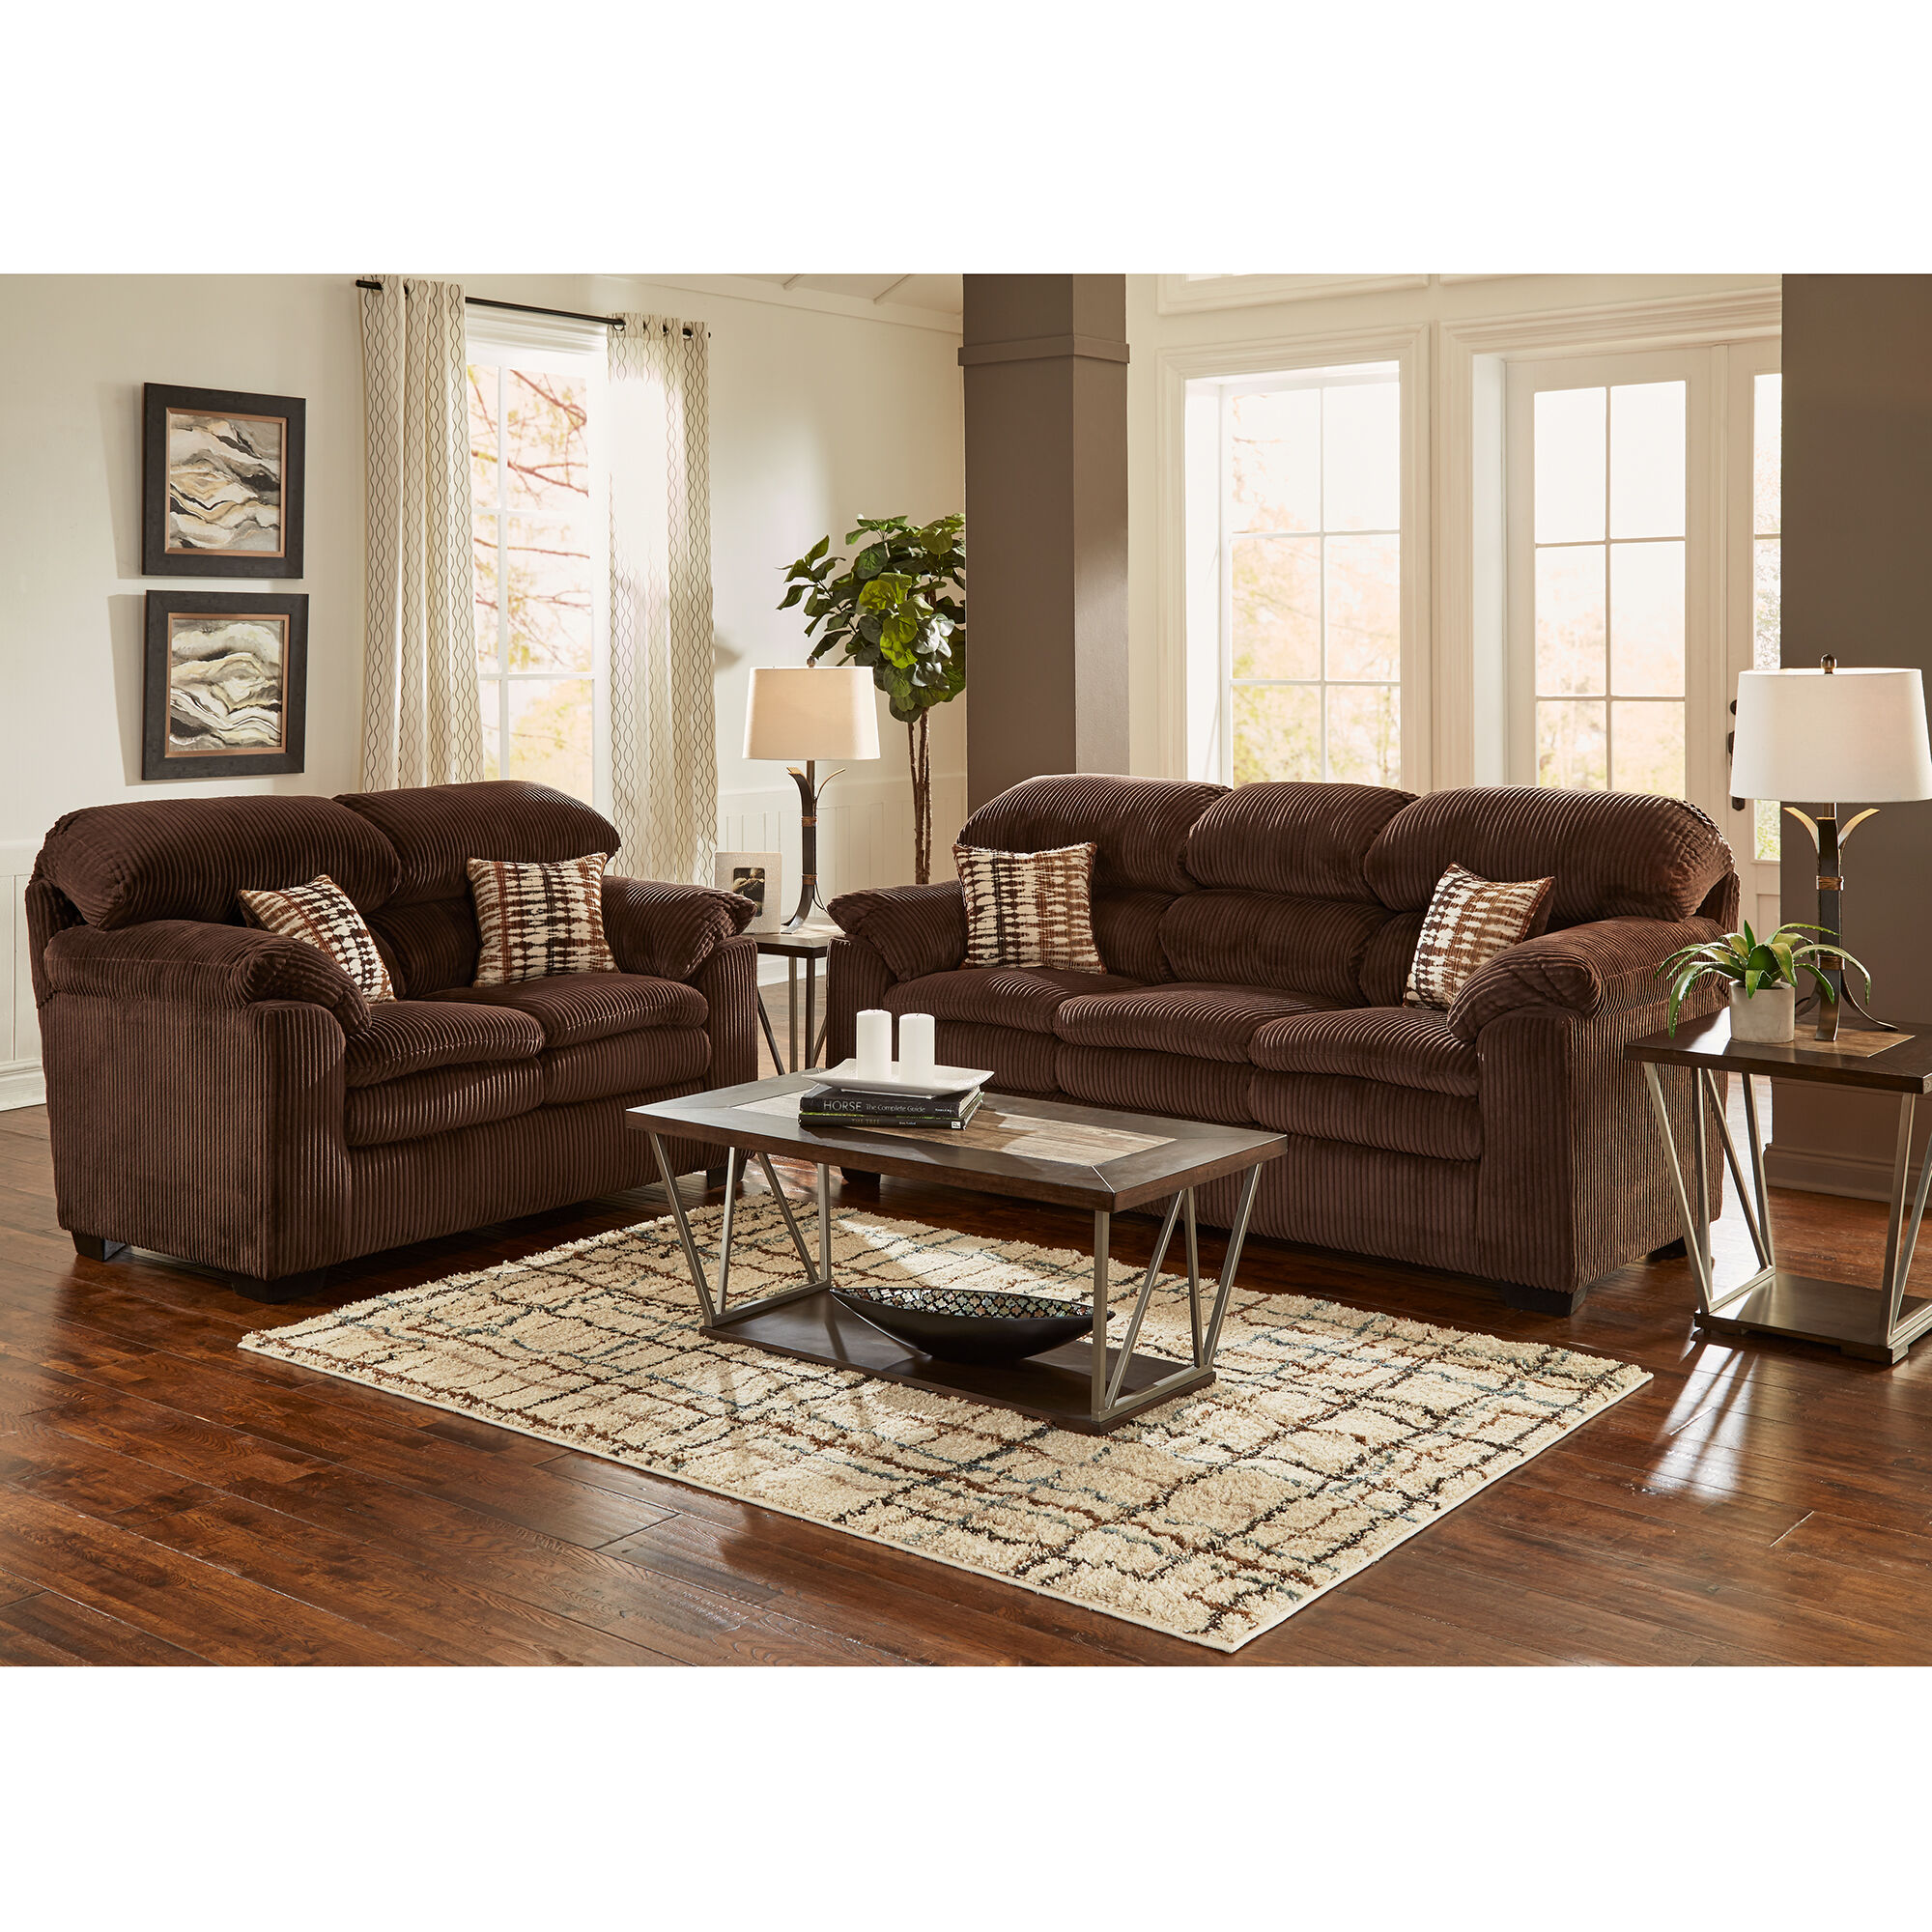 2 Piece Birmingham Living Room Collection